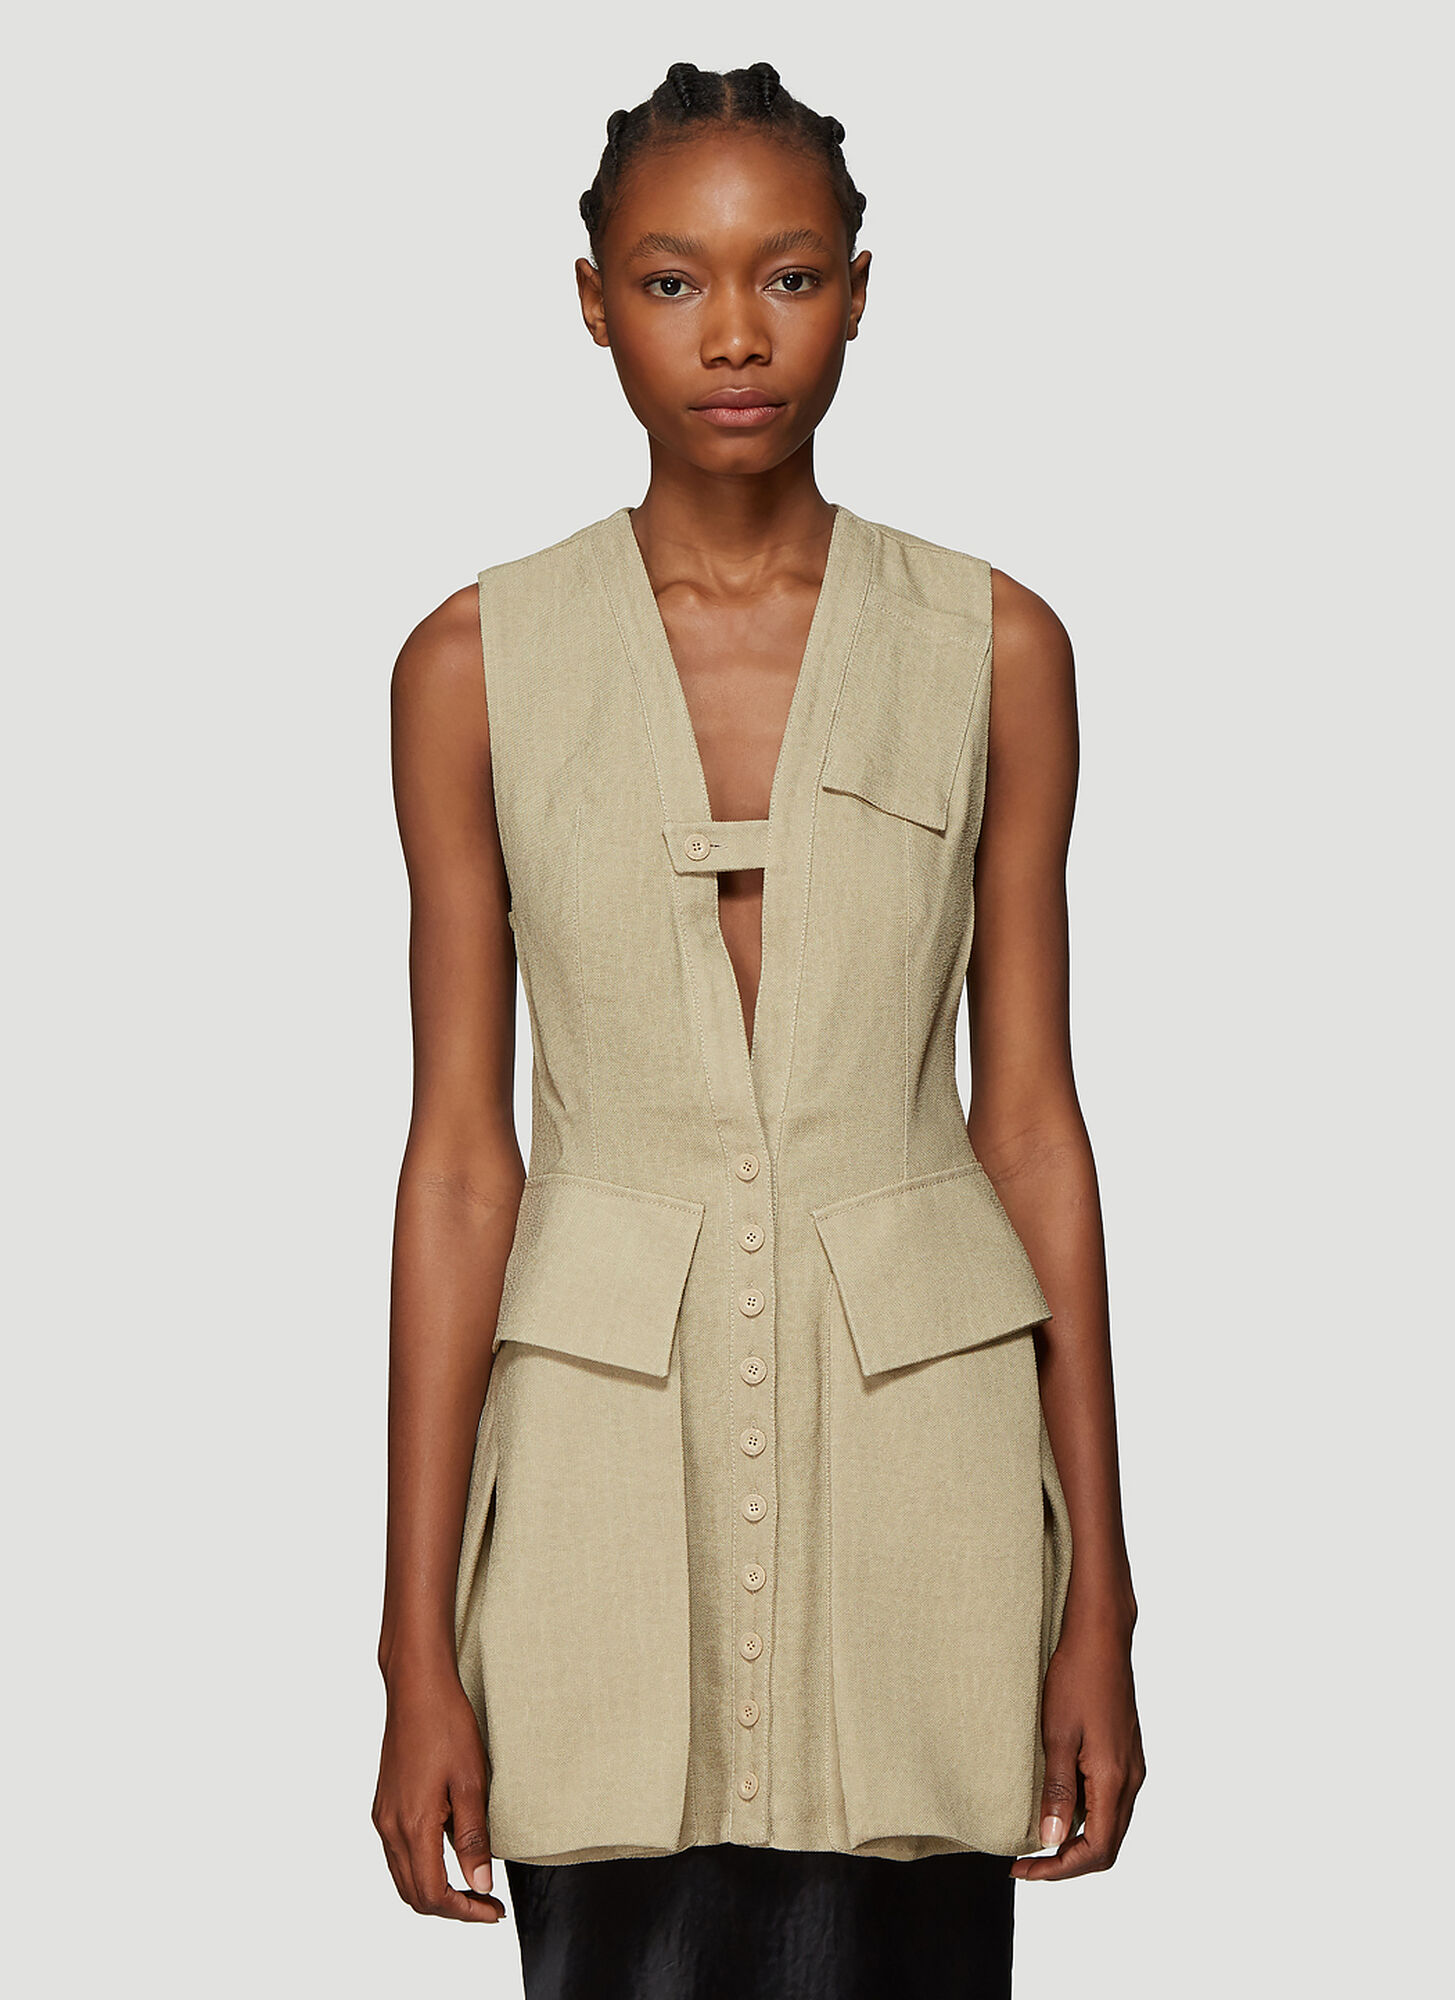 Jacquemus Le Haut Kimbe Dress in Beige